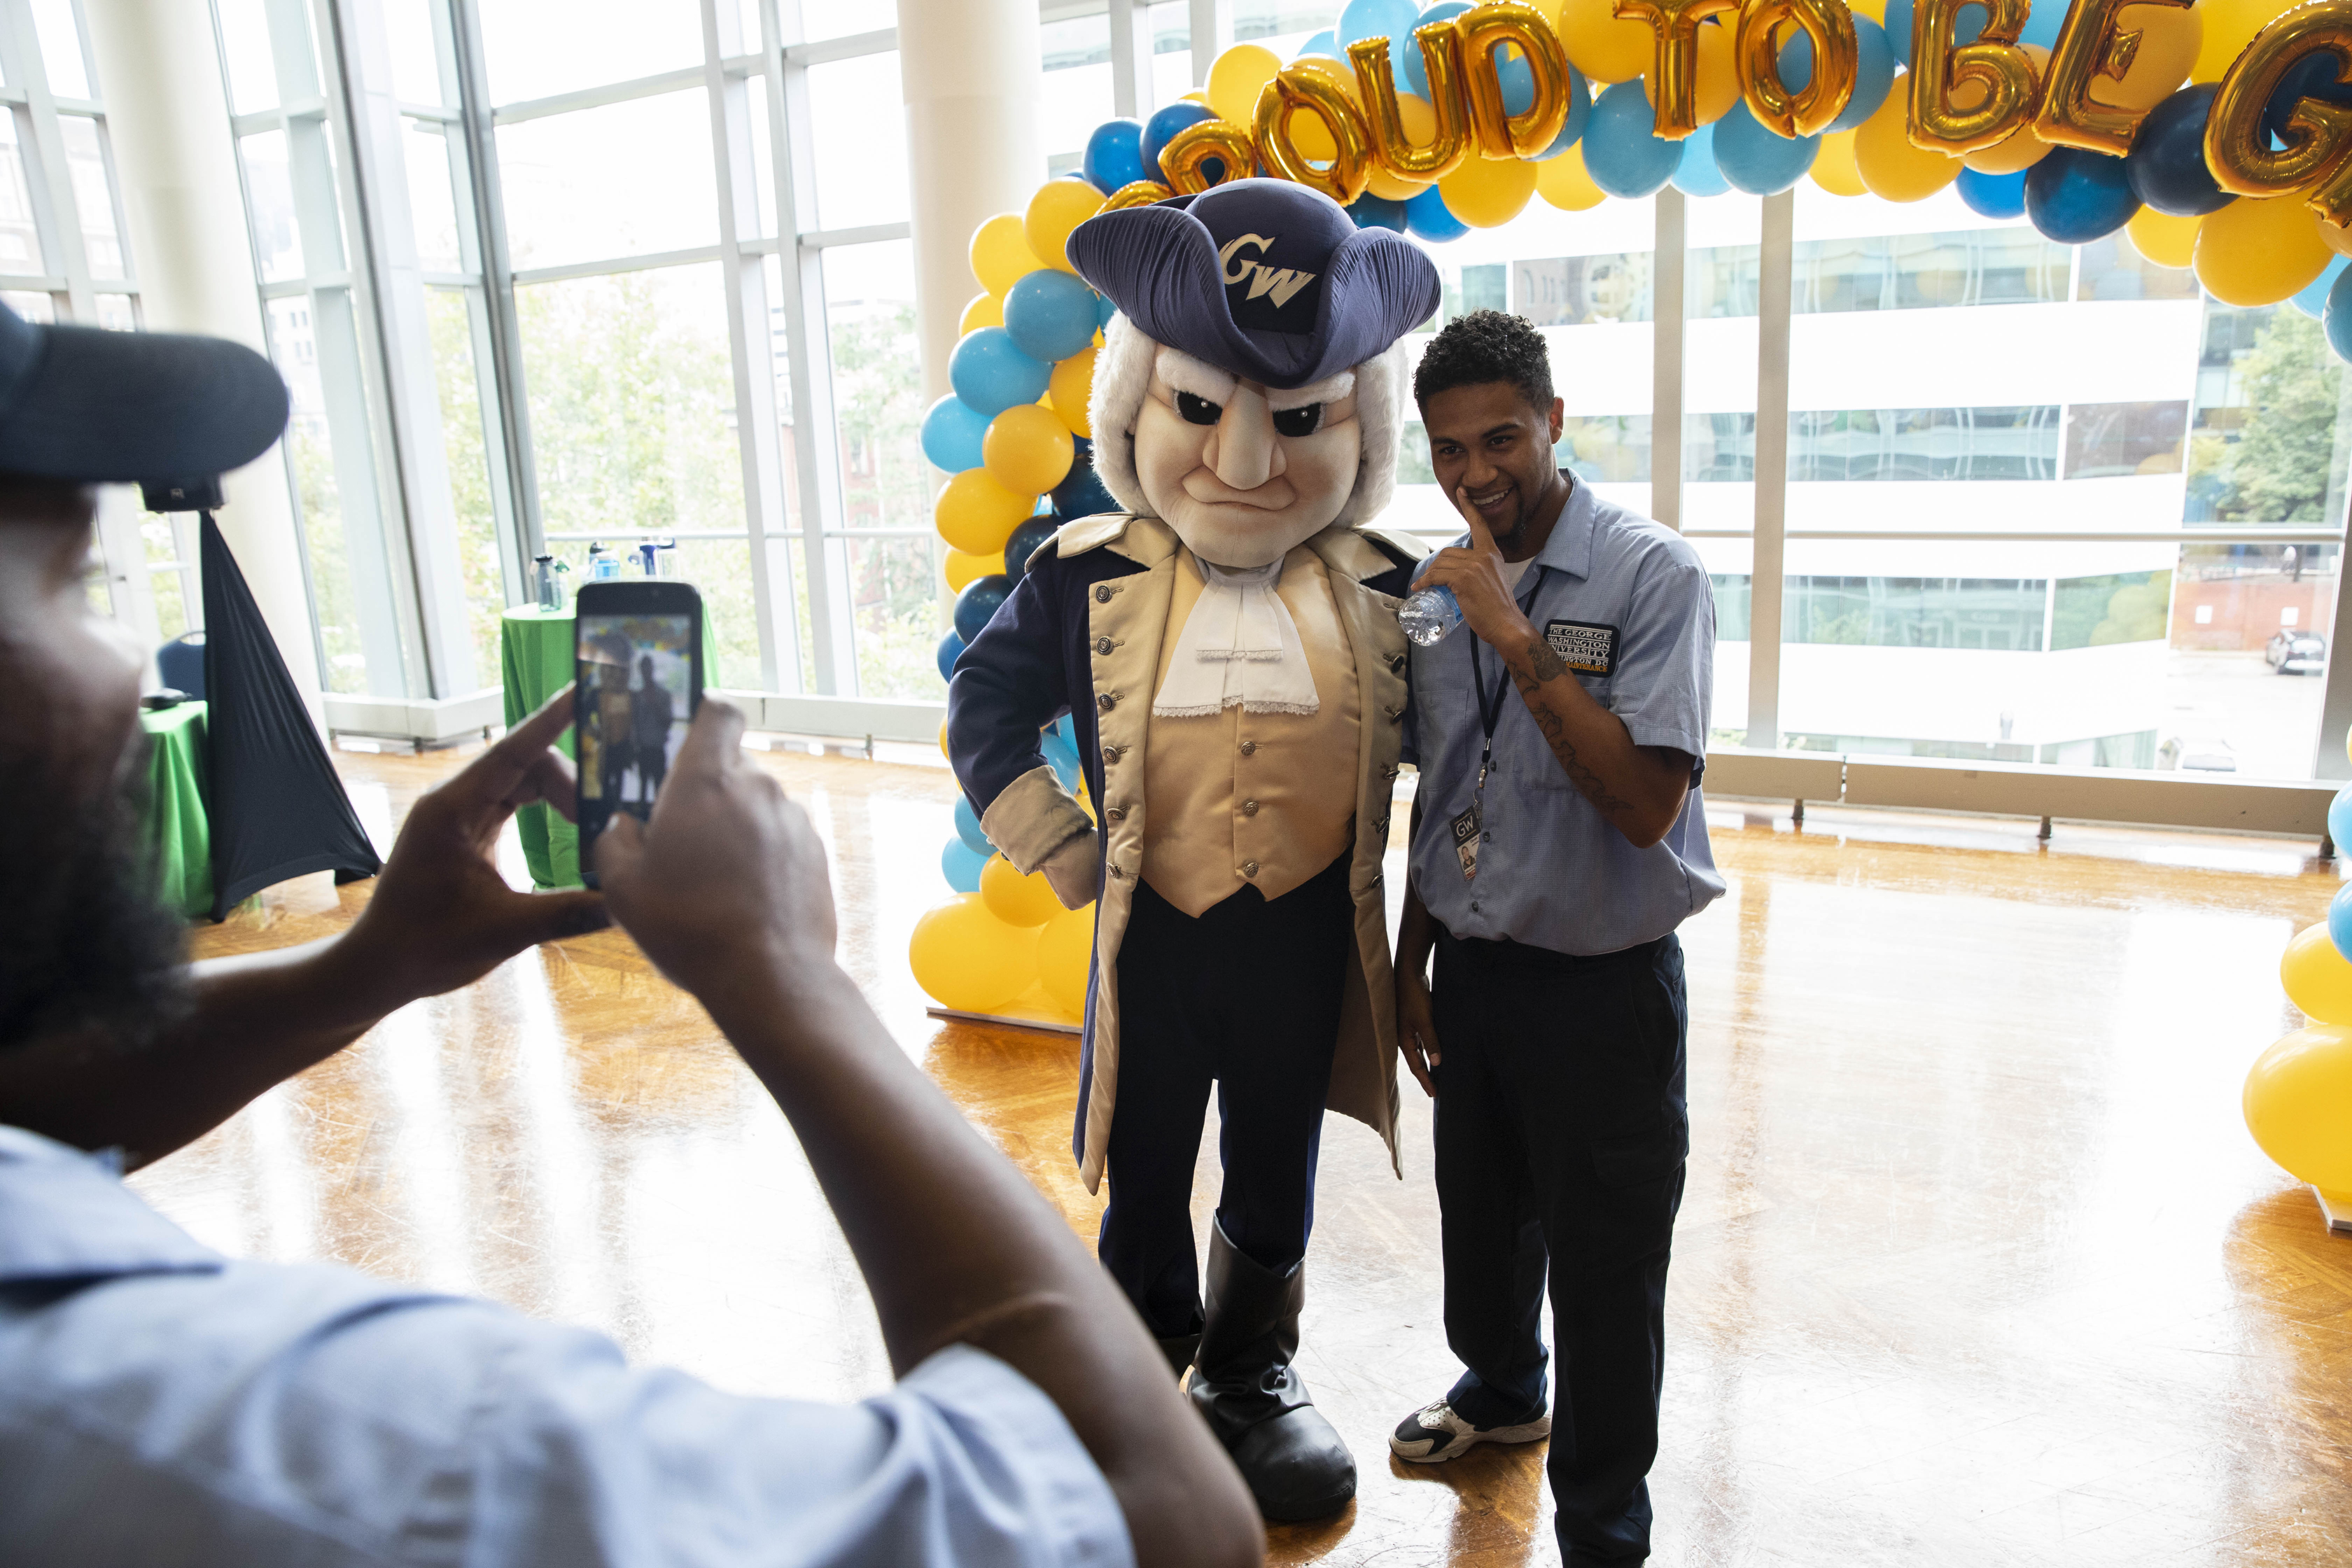 Male staff member posing with George mascot under balloon arrangement Proud to Be GW